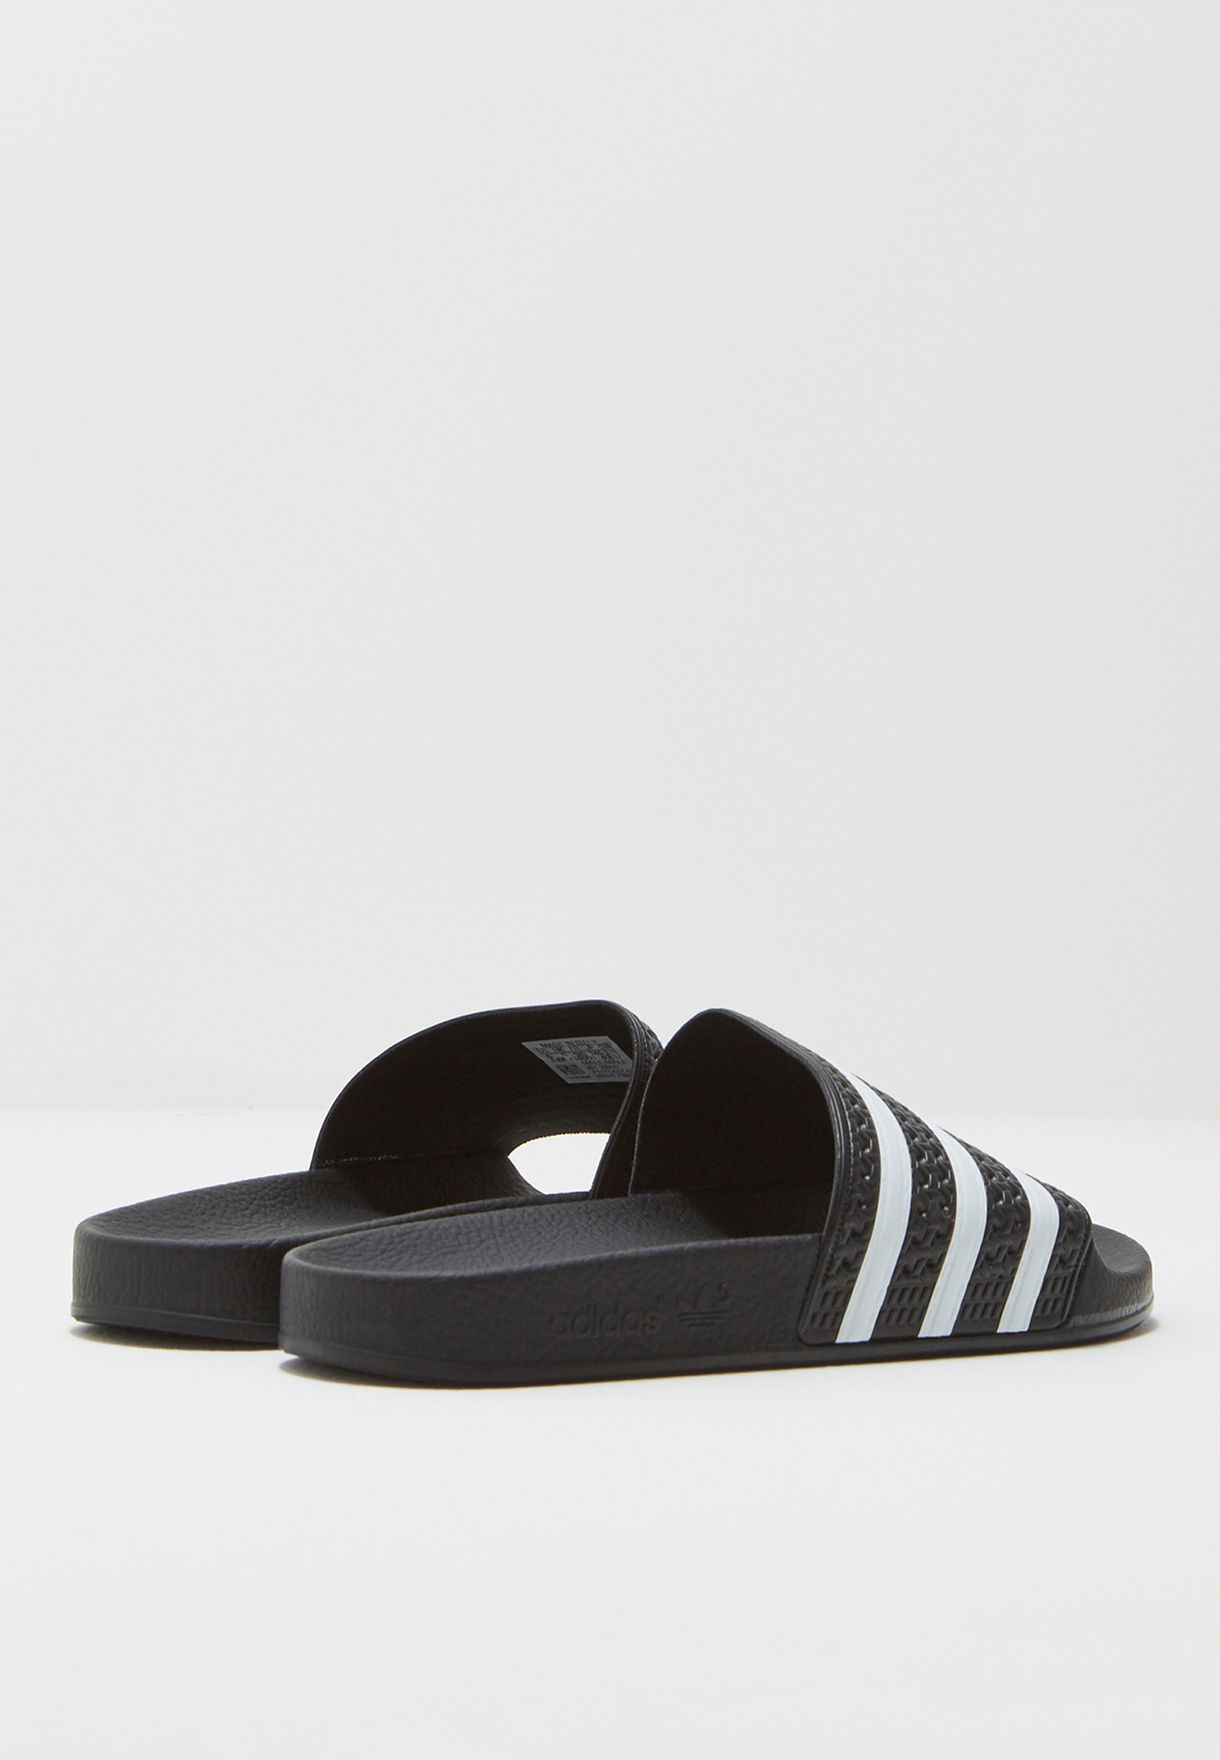 9217de59d68e61 Shop adidas Originals black Adilette 280647 for Women in UAE ...